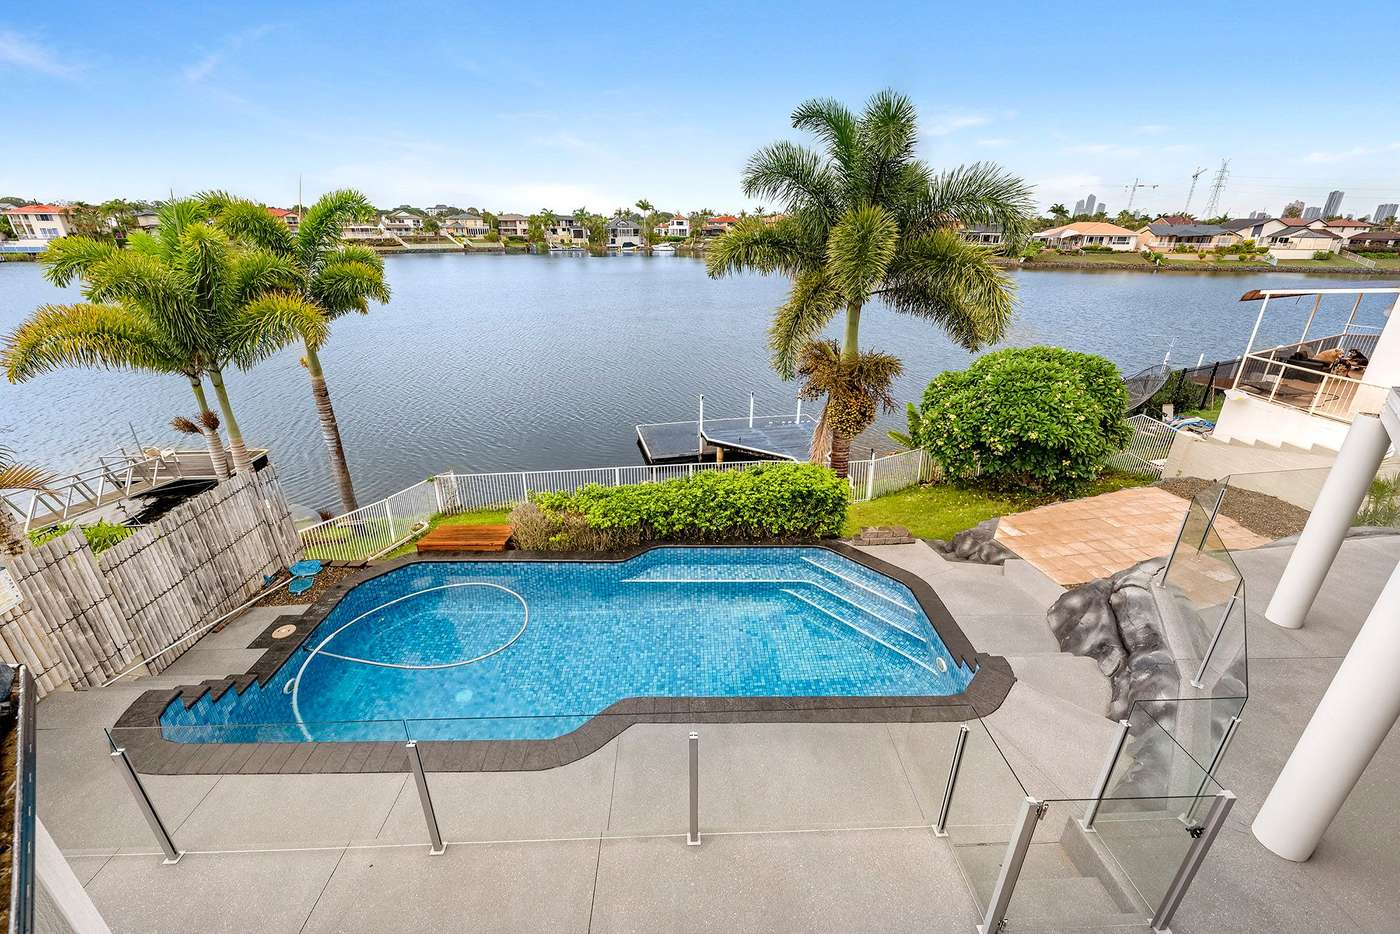 Sixth view of Homely house listing, 156 Port Jackson Boulevard, Clear Island Waters QLD 4226